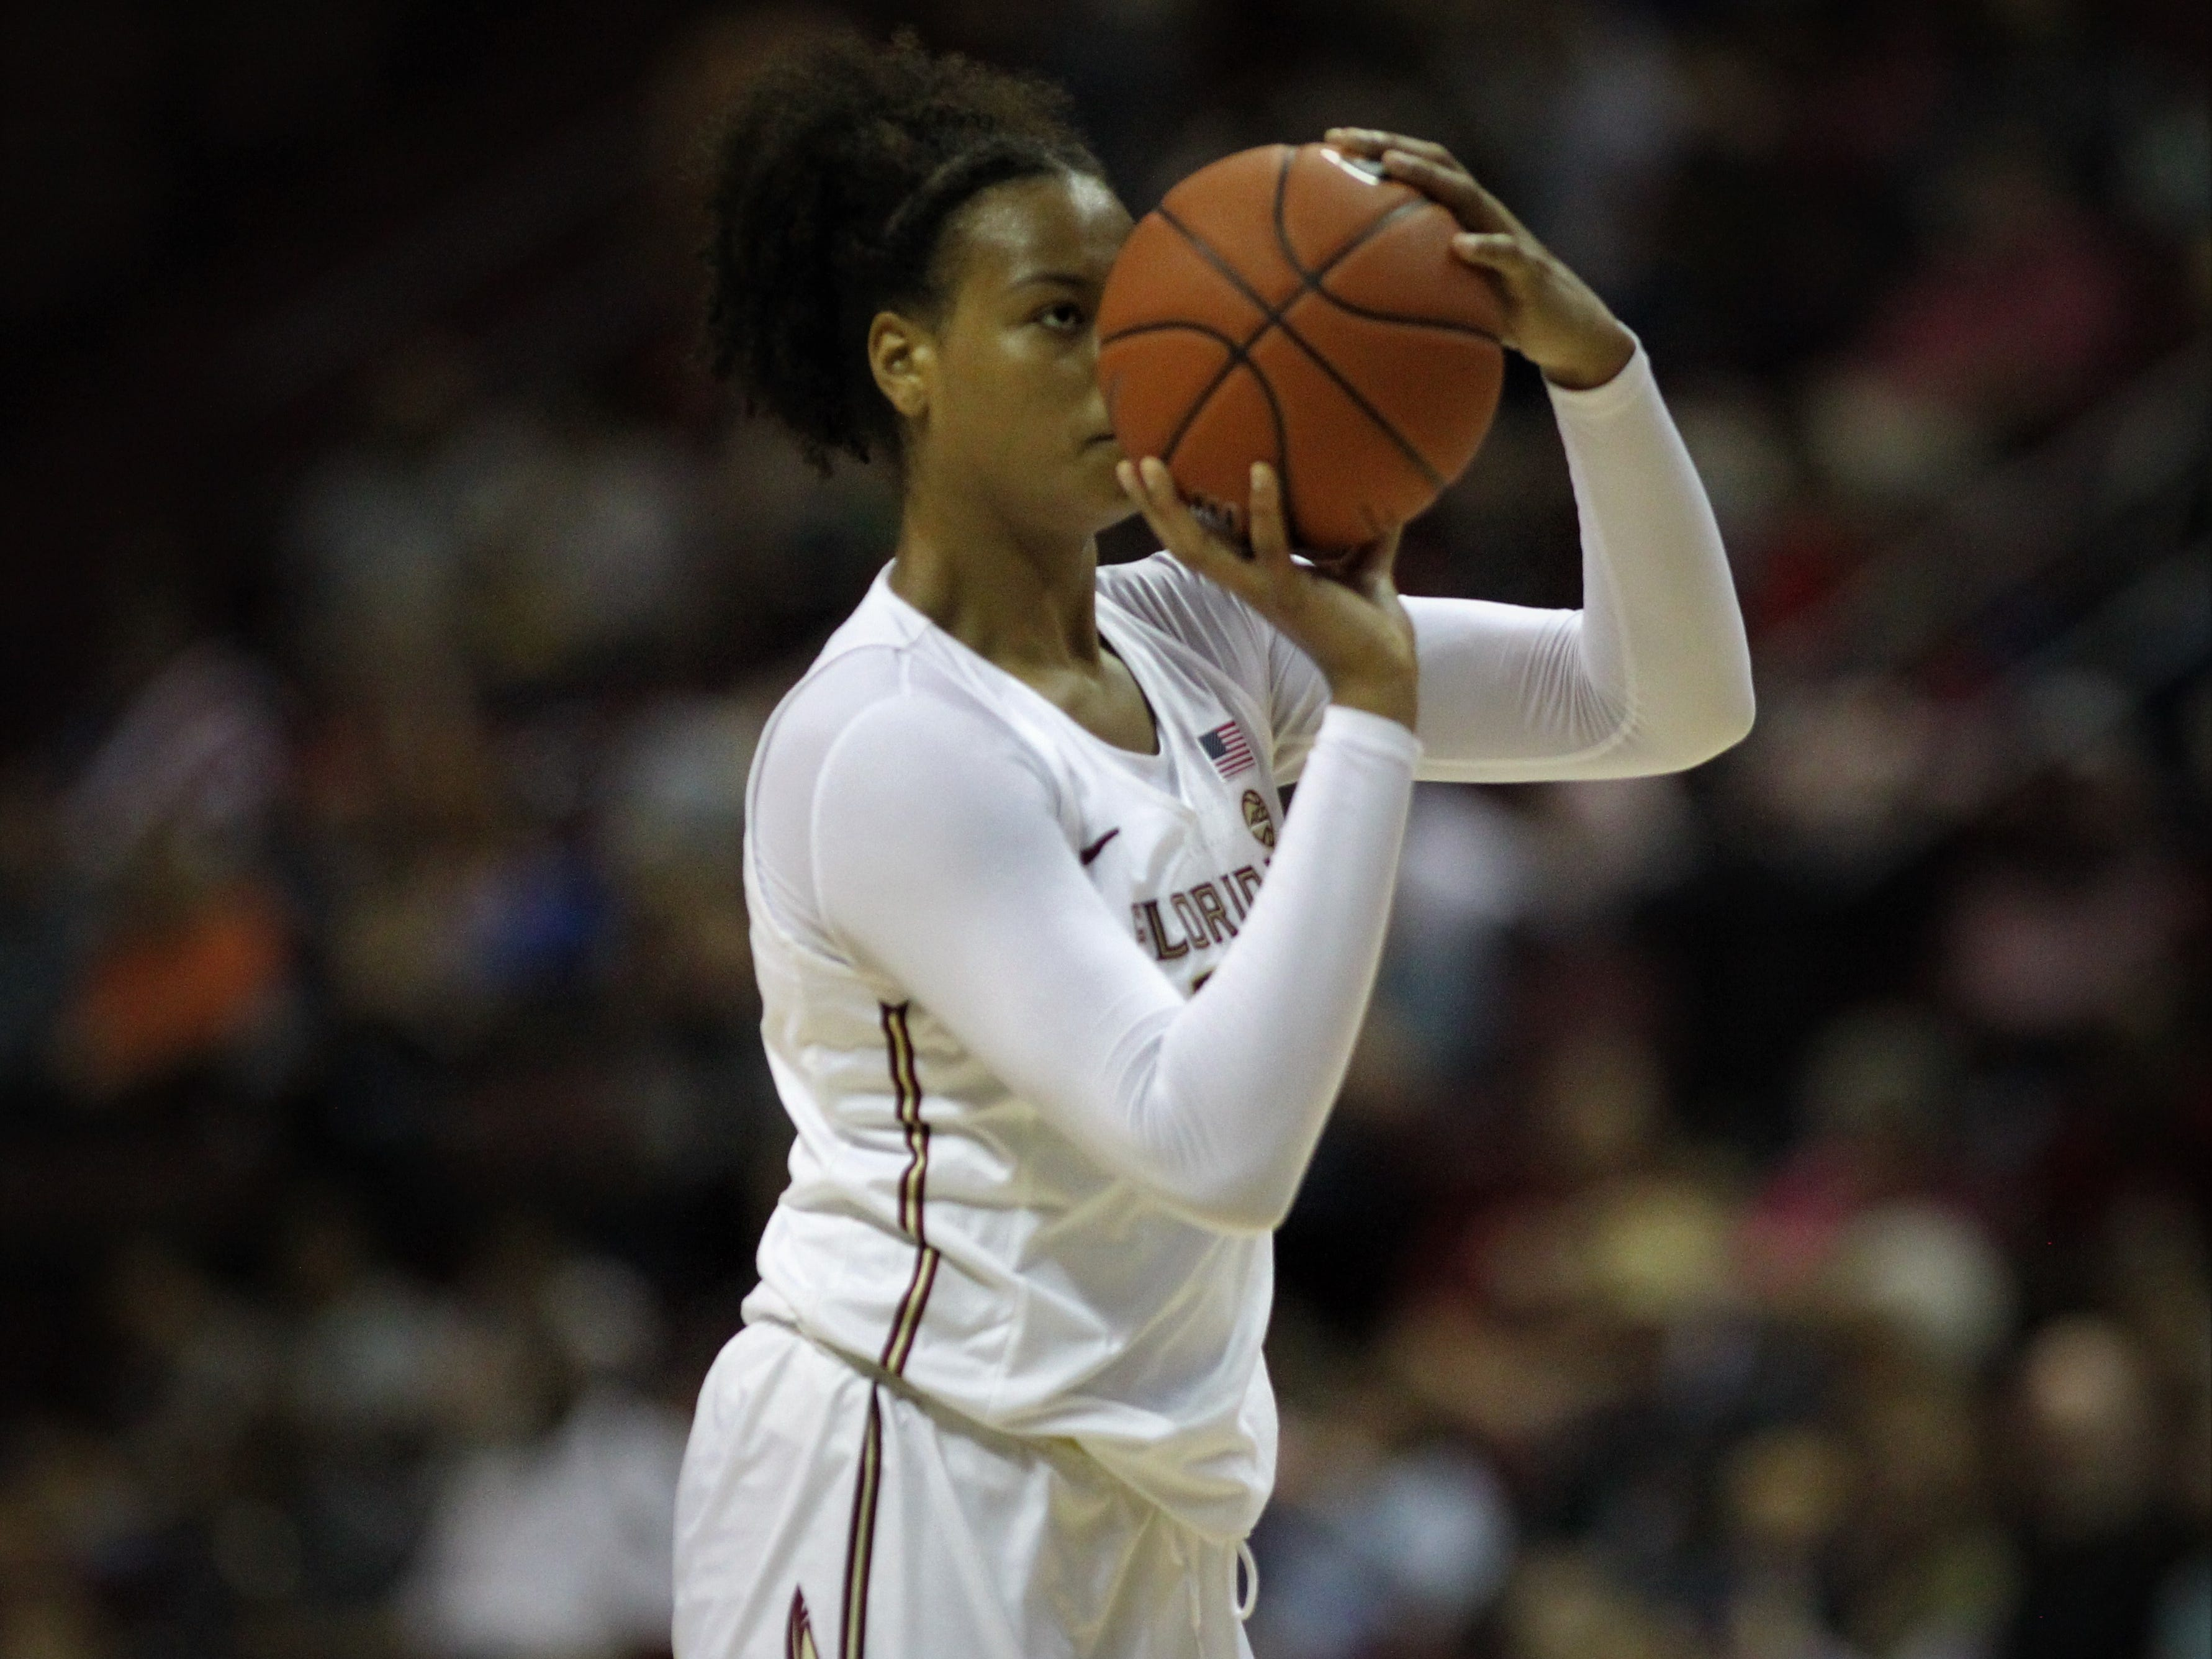 Florida State freshman Valencia Myers shoots a jumper during the first half of the Seminoles' game against Florida at the Tucker Civic Center on Nov. 11, 2018.